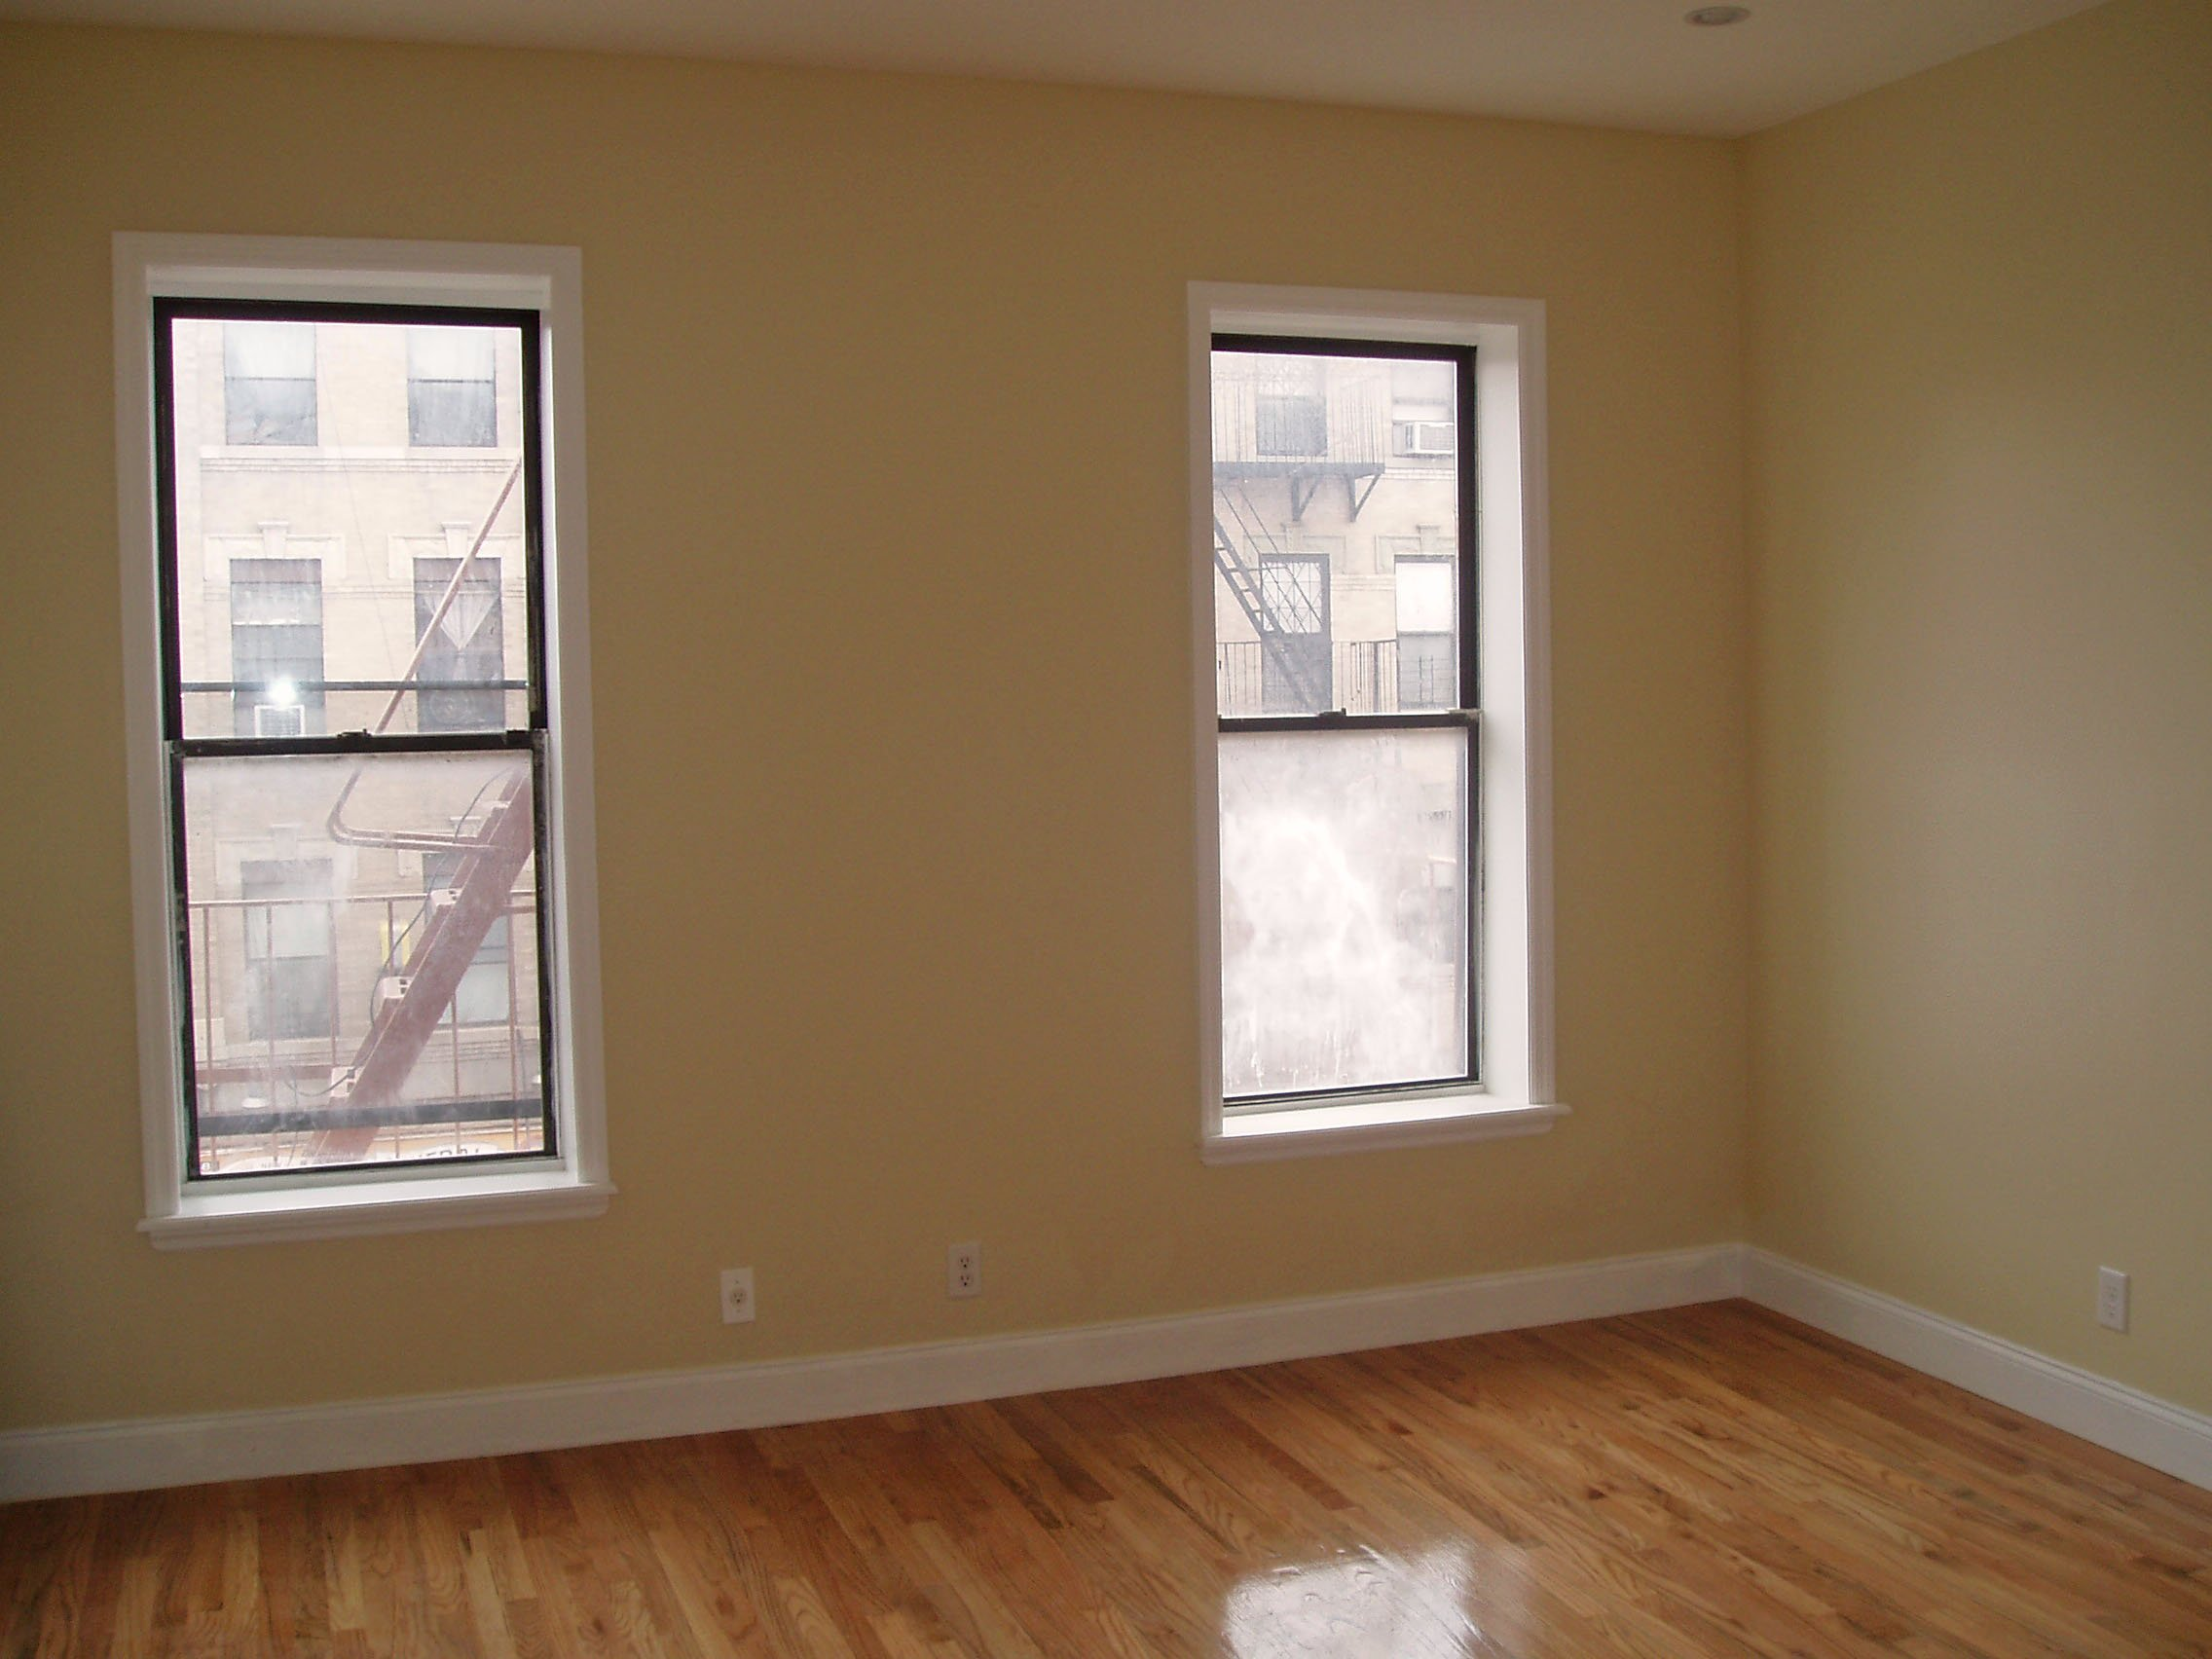 4 Bedroom Apartment For Rent In Crown Heights Brooklyn Ny Latest Bestapartment 2018